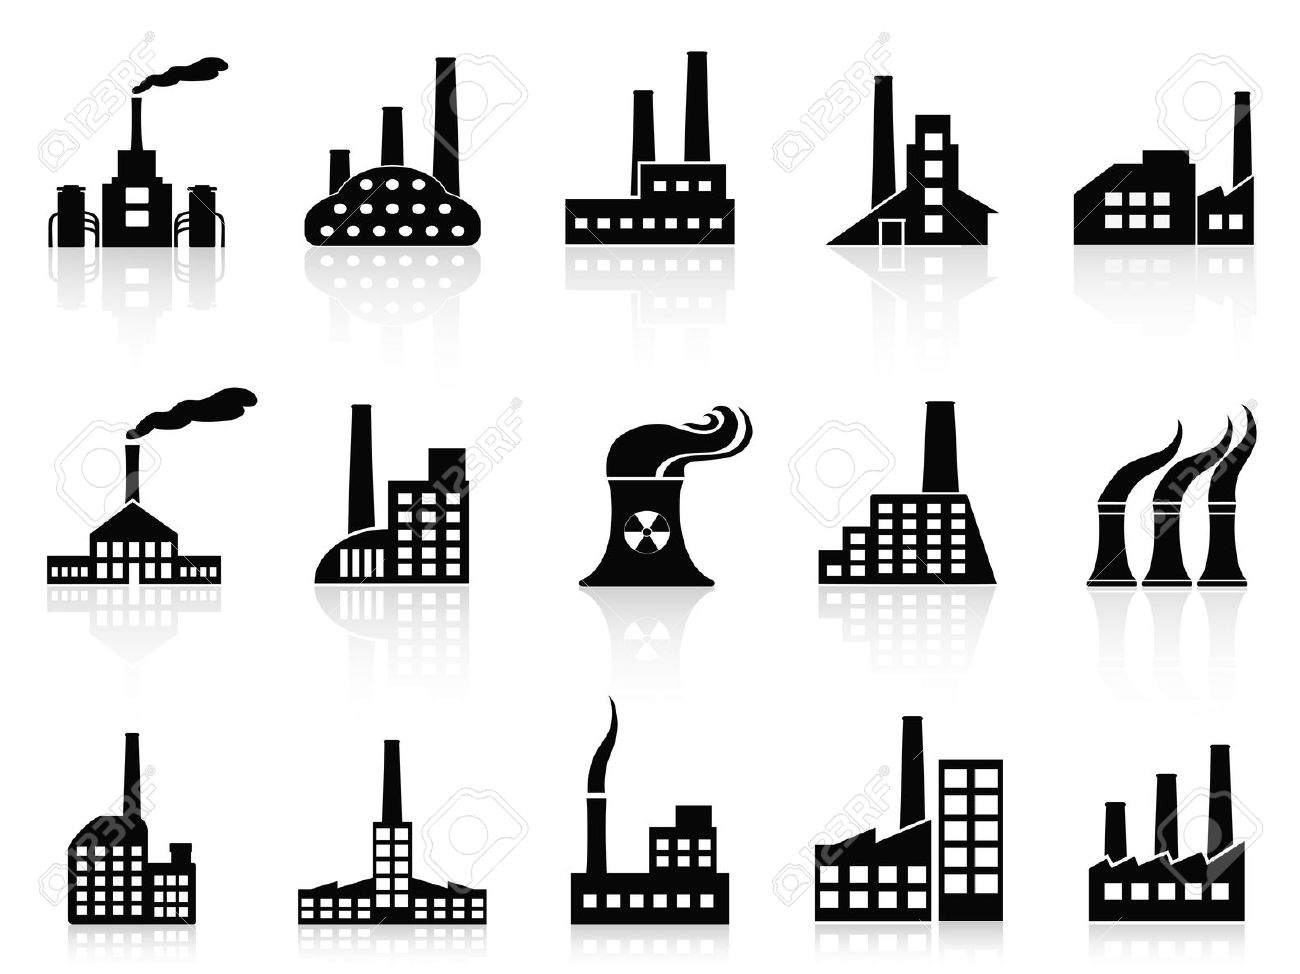 Smoke stacks clipart.